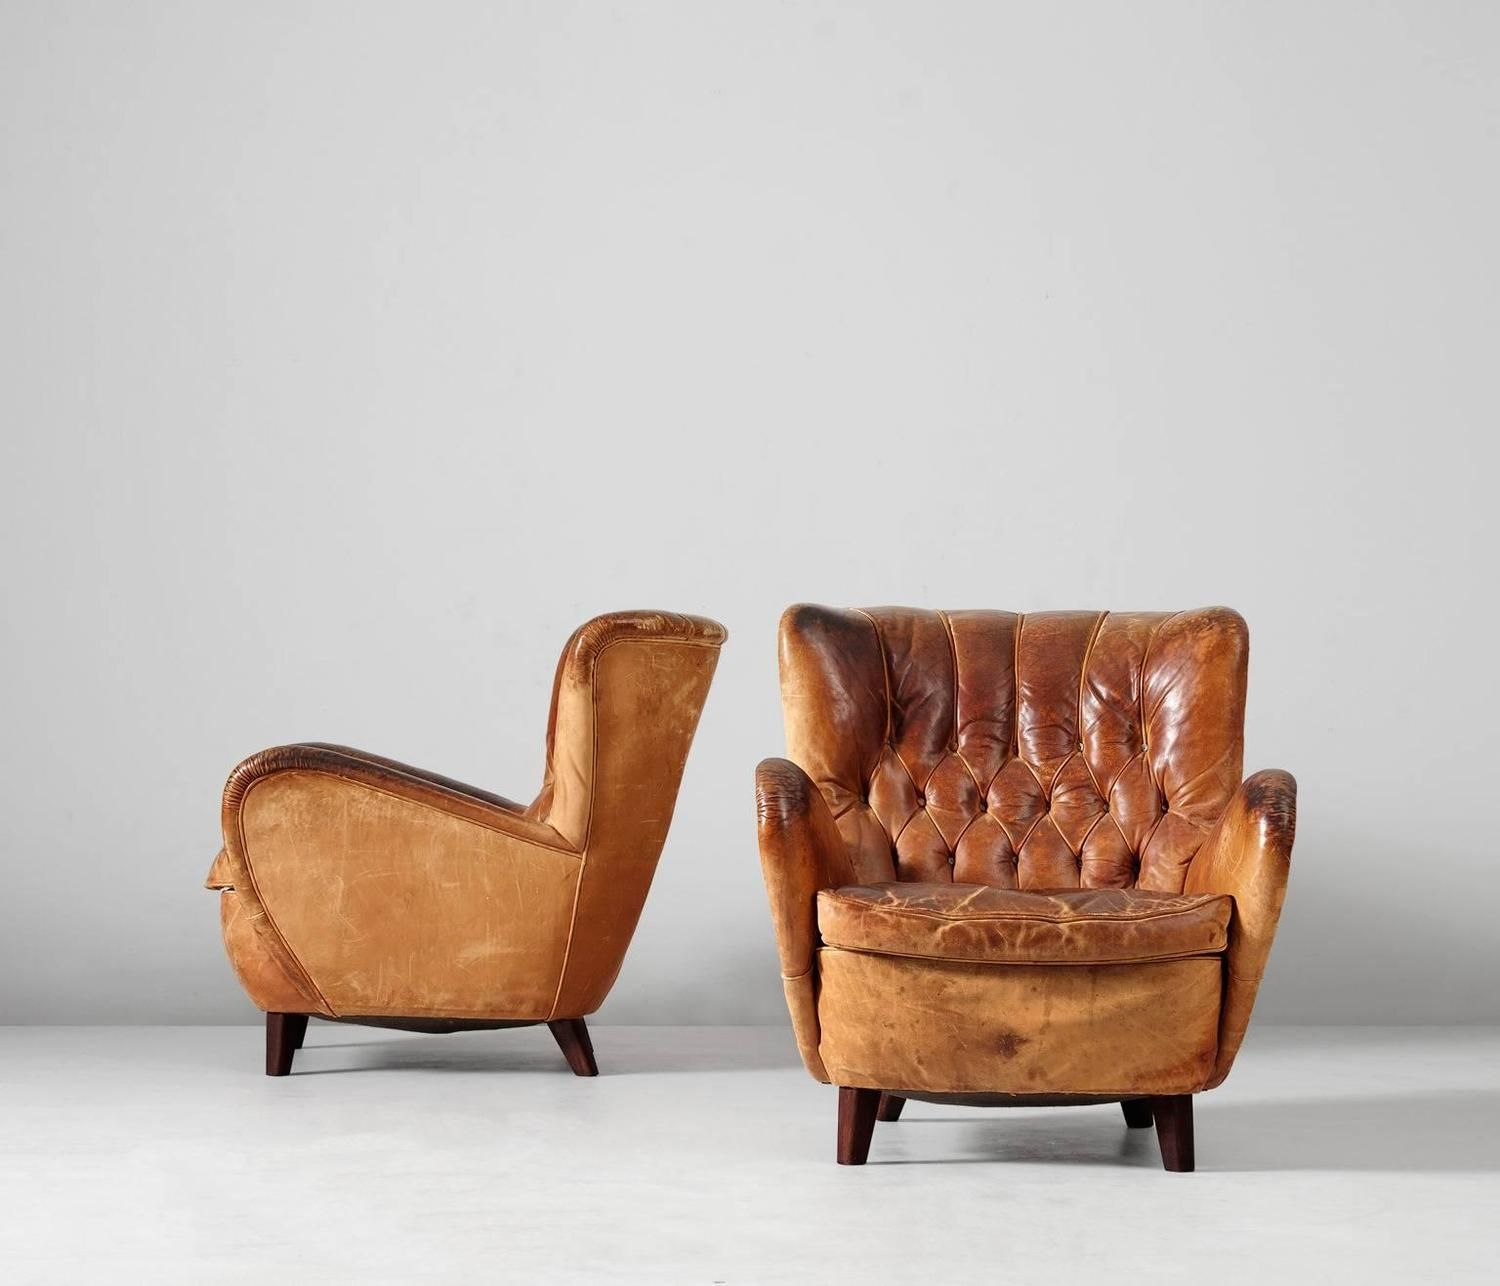 Best Lounge Chairs In Original Cognac Leather Upholstery 1930S 400 x 300